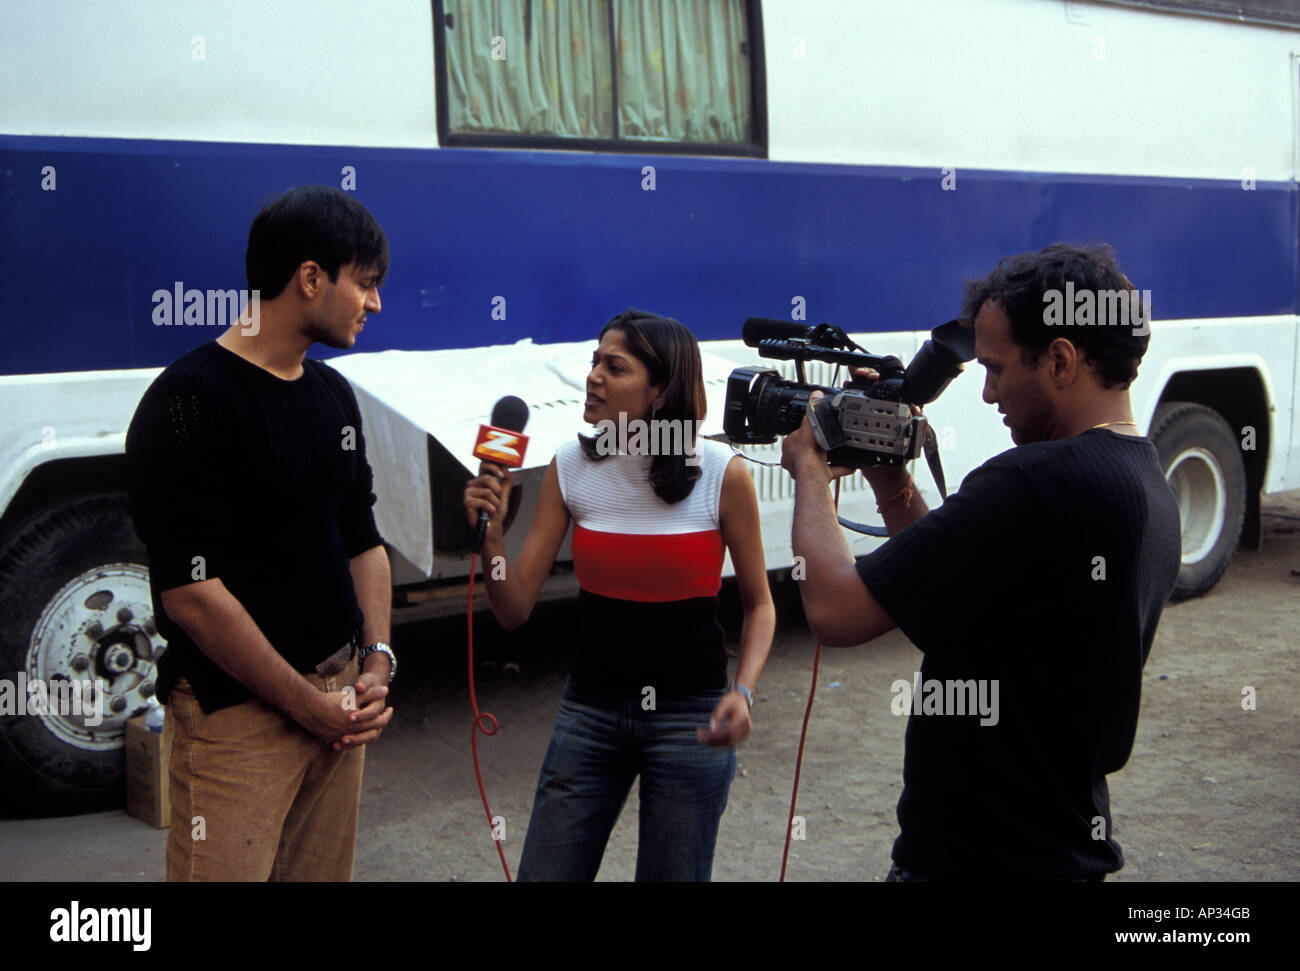 Vivek Oberoi being interviewed during a break in filming for 'Masti', Mumbai, South India - Stock Image